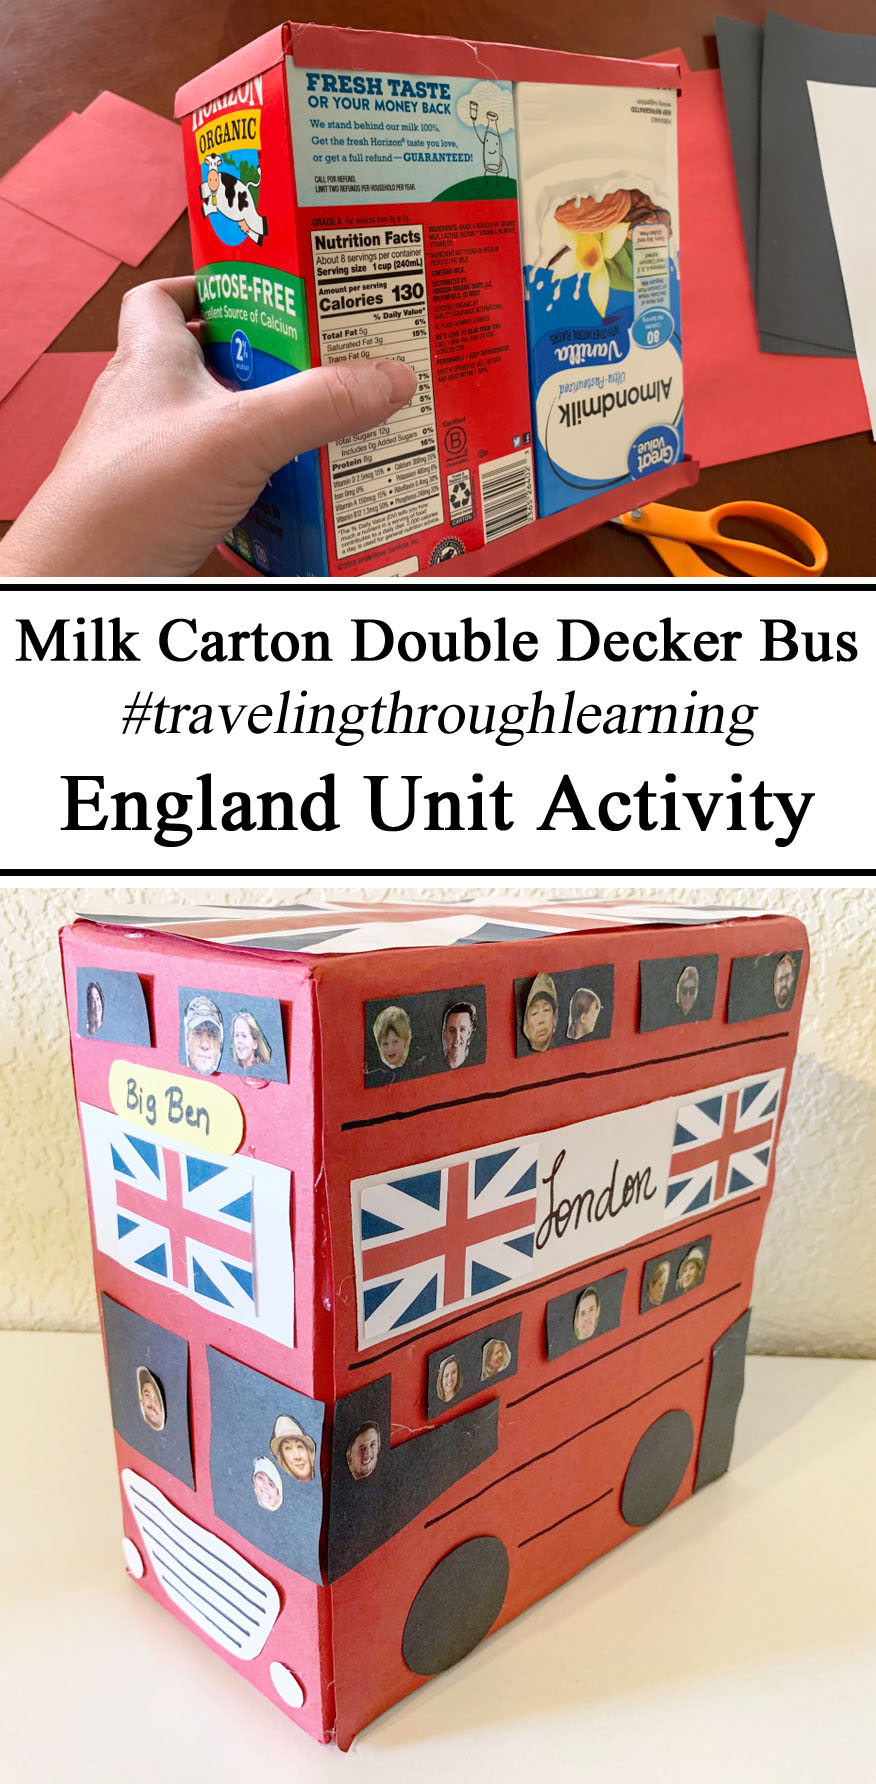 England Great Britain, British, English, UK, Activity, Hands on Learning Play Based Learn, Milk Caton Double Decker London Bus #travelingthroughlearning, Educational Activities, Preschool, PreK, Kindergarten, Unschooling, Waldorf, Montessori, Free Printables, Inspiration, Ideas